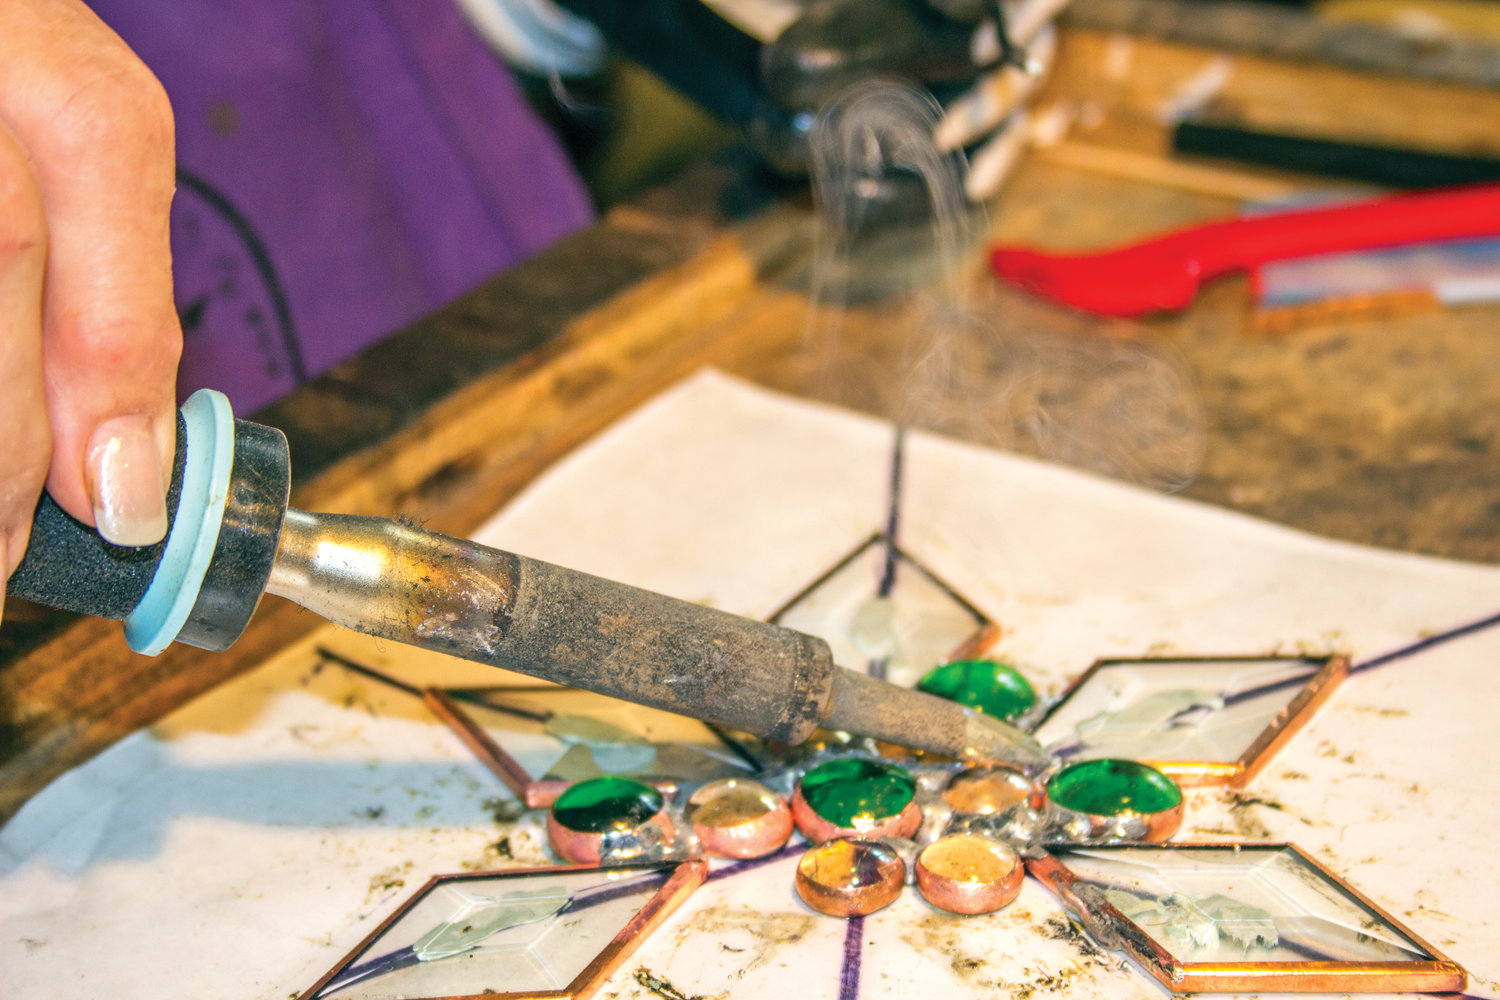 Pat Chase enjoys the soldering phase the most, and says mistakes can be used to create beautiful designs.